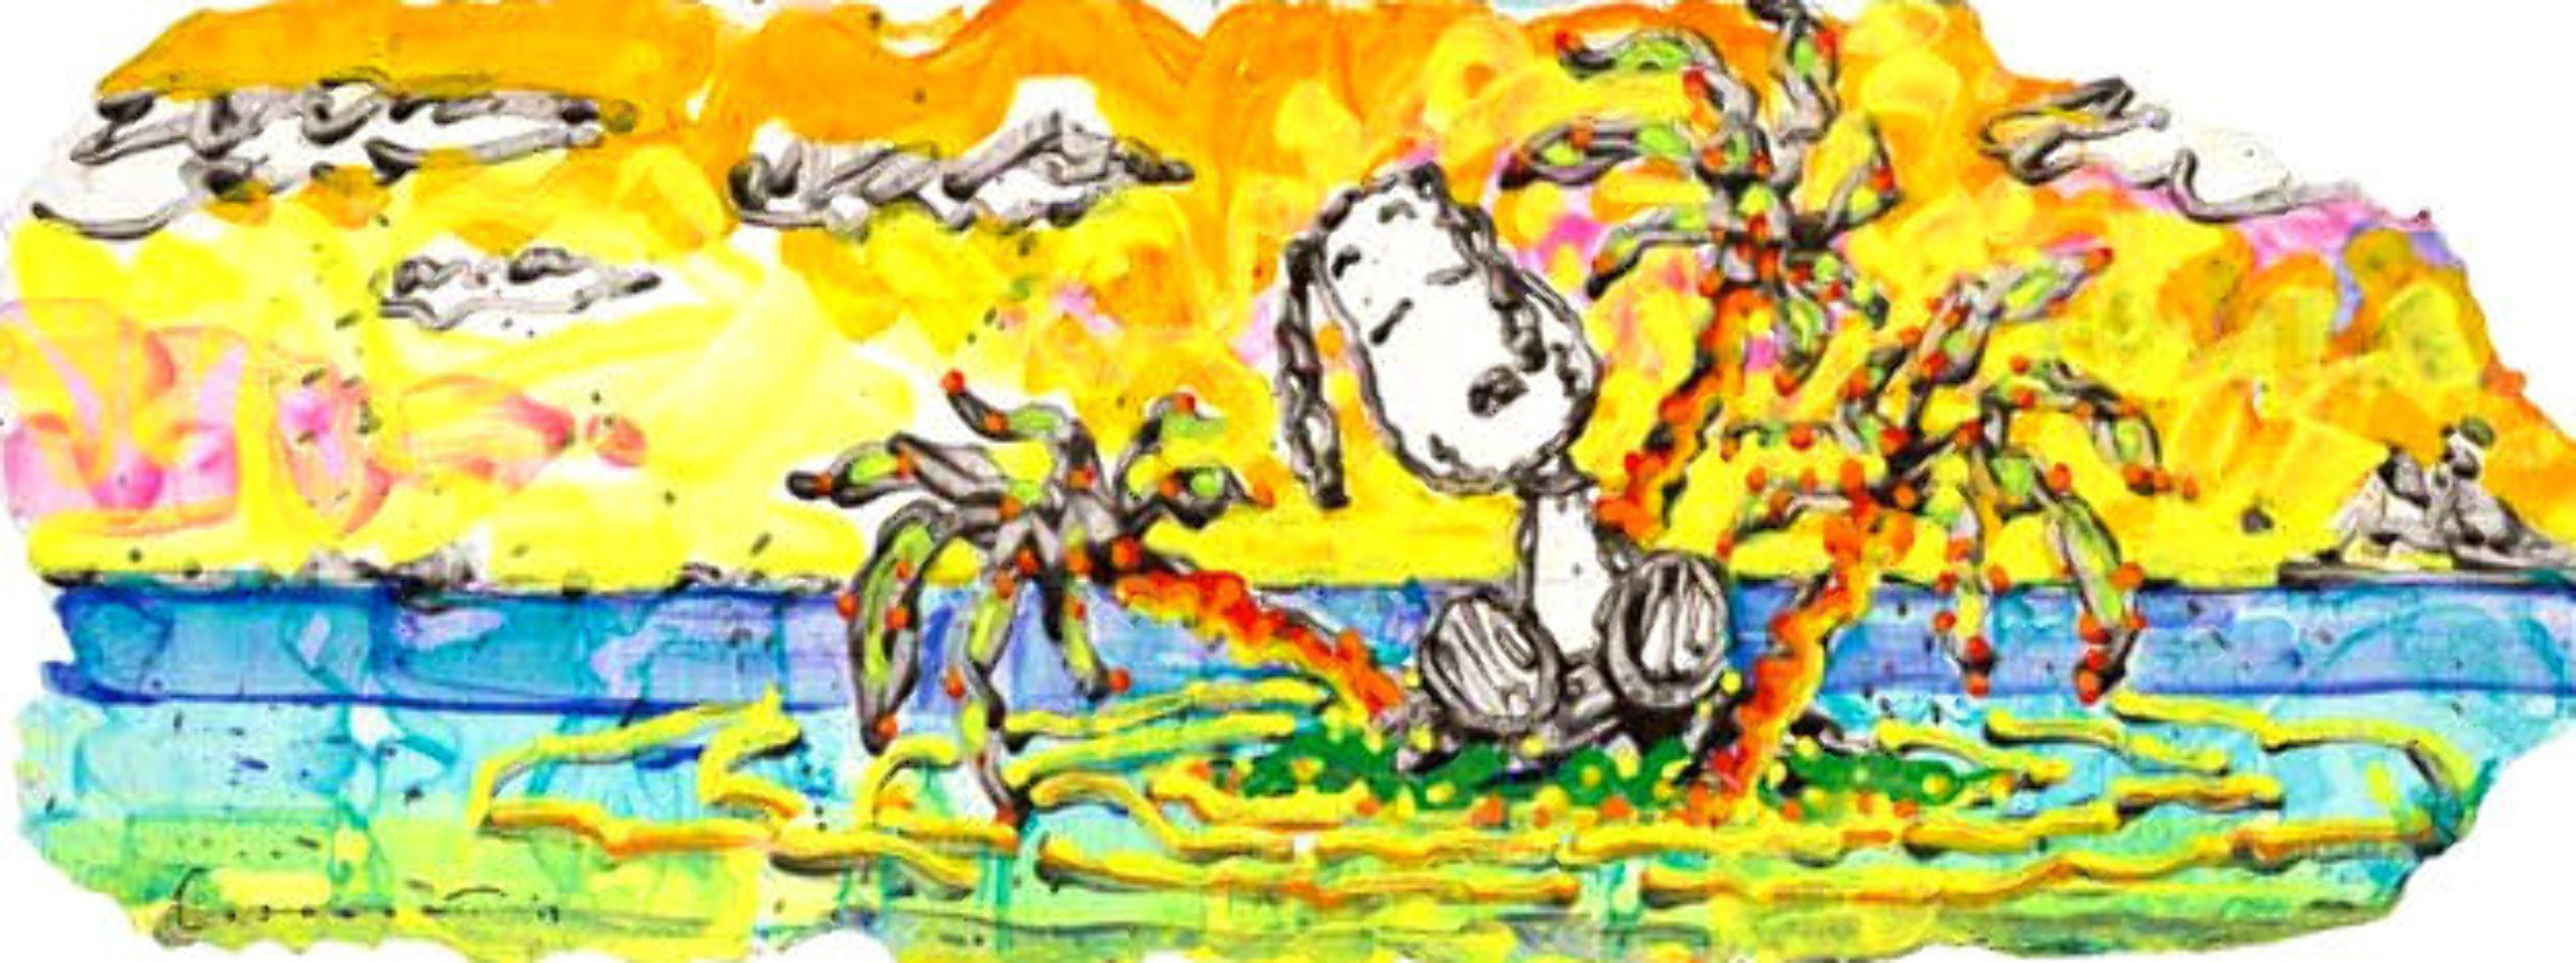 Snoop Dogg 2014 Limited Edition Print by Tom Everhart